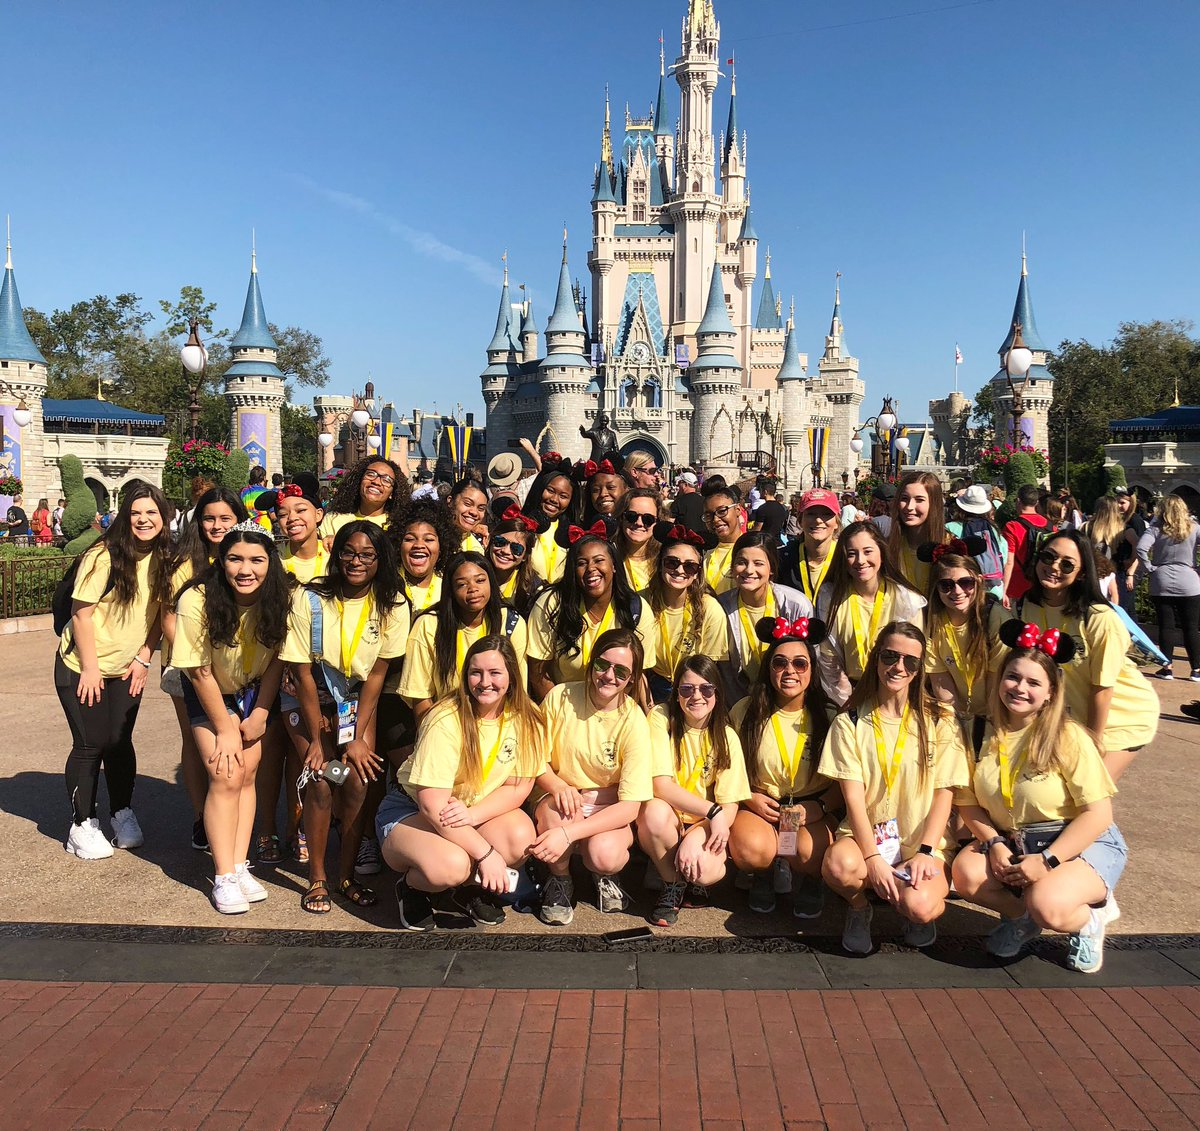 We have made it !!!!! Most magical place on 🌎🌎🌎 ! #disney2019 #magic